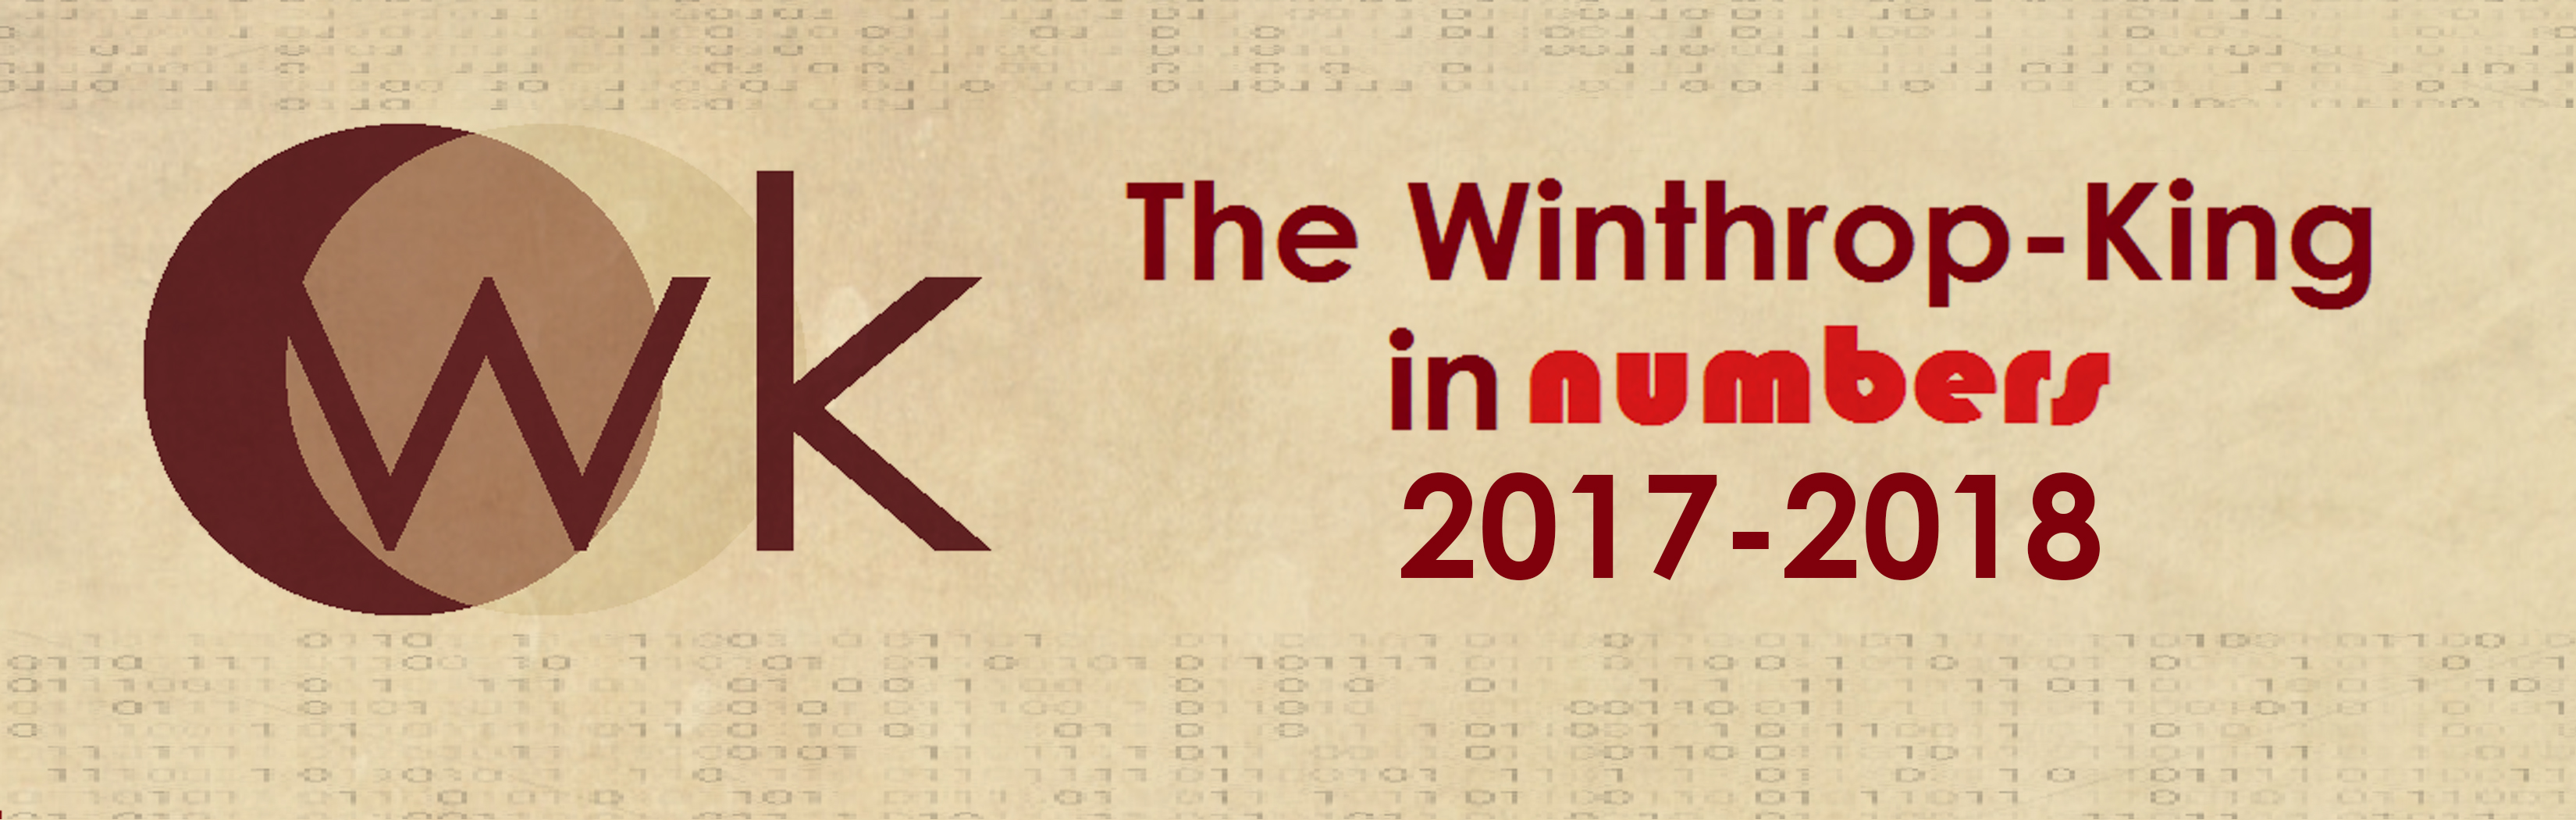 THE WINTHROP-KING INSTITUTE IN NUMBERS